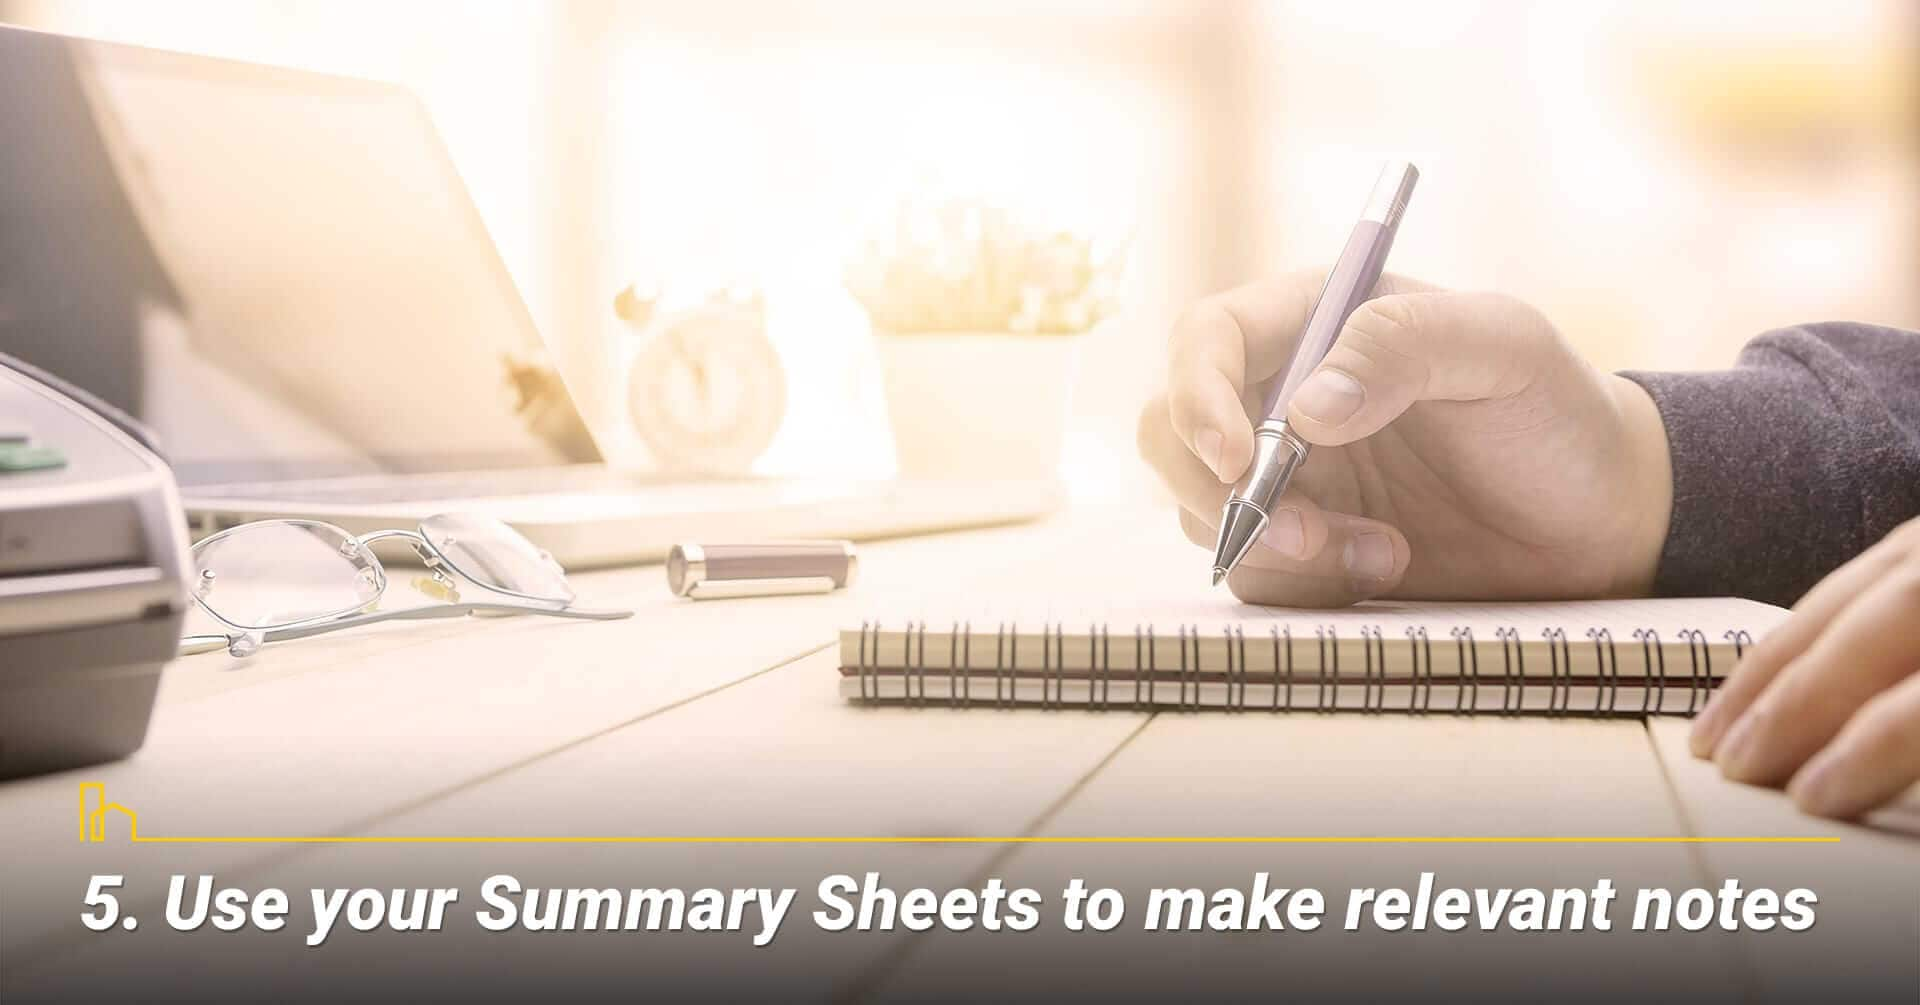 Use your Summary Sheets to make relevant notes